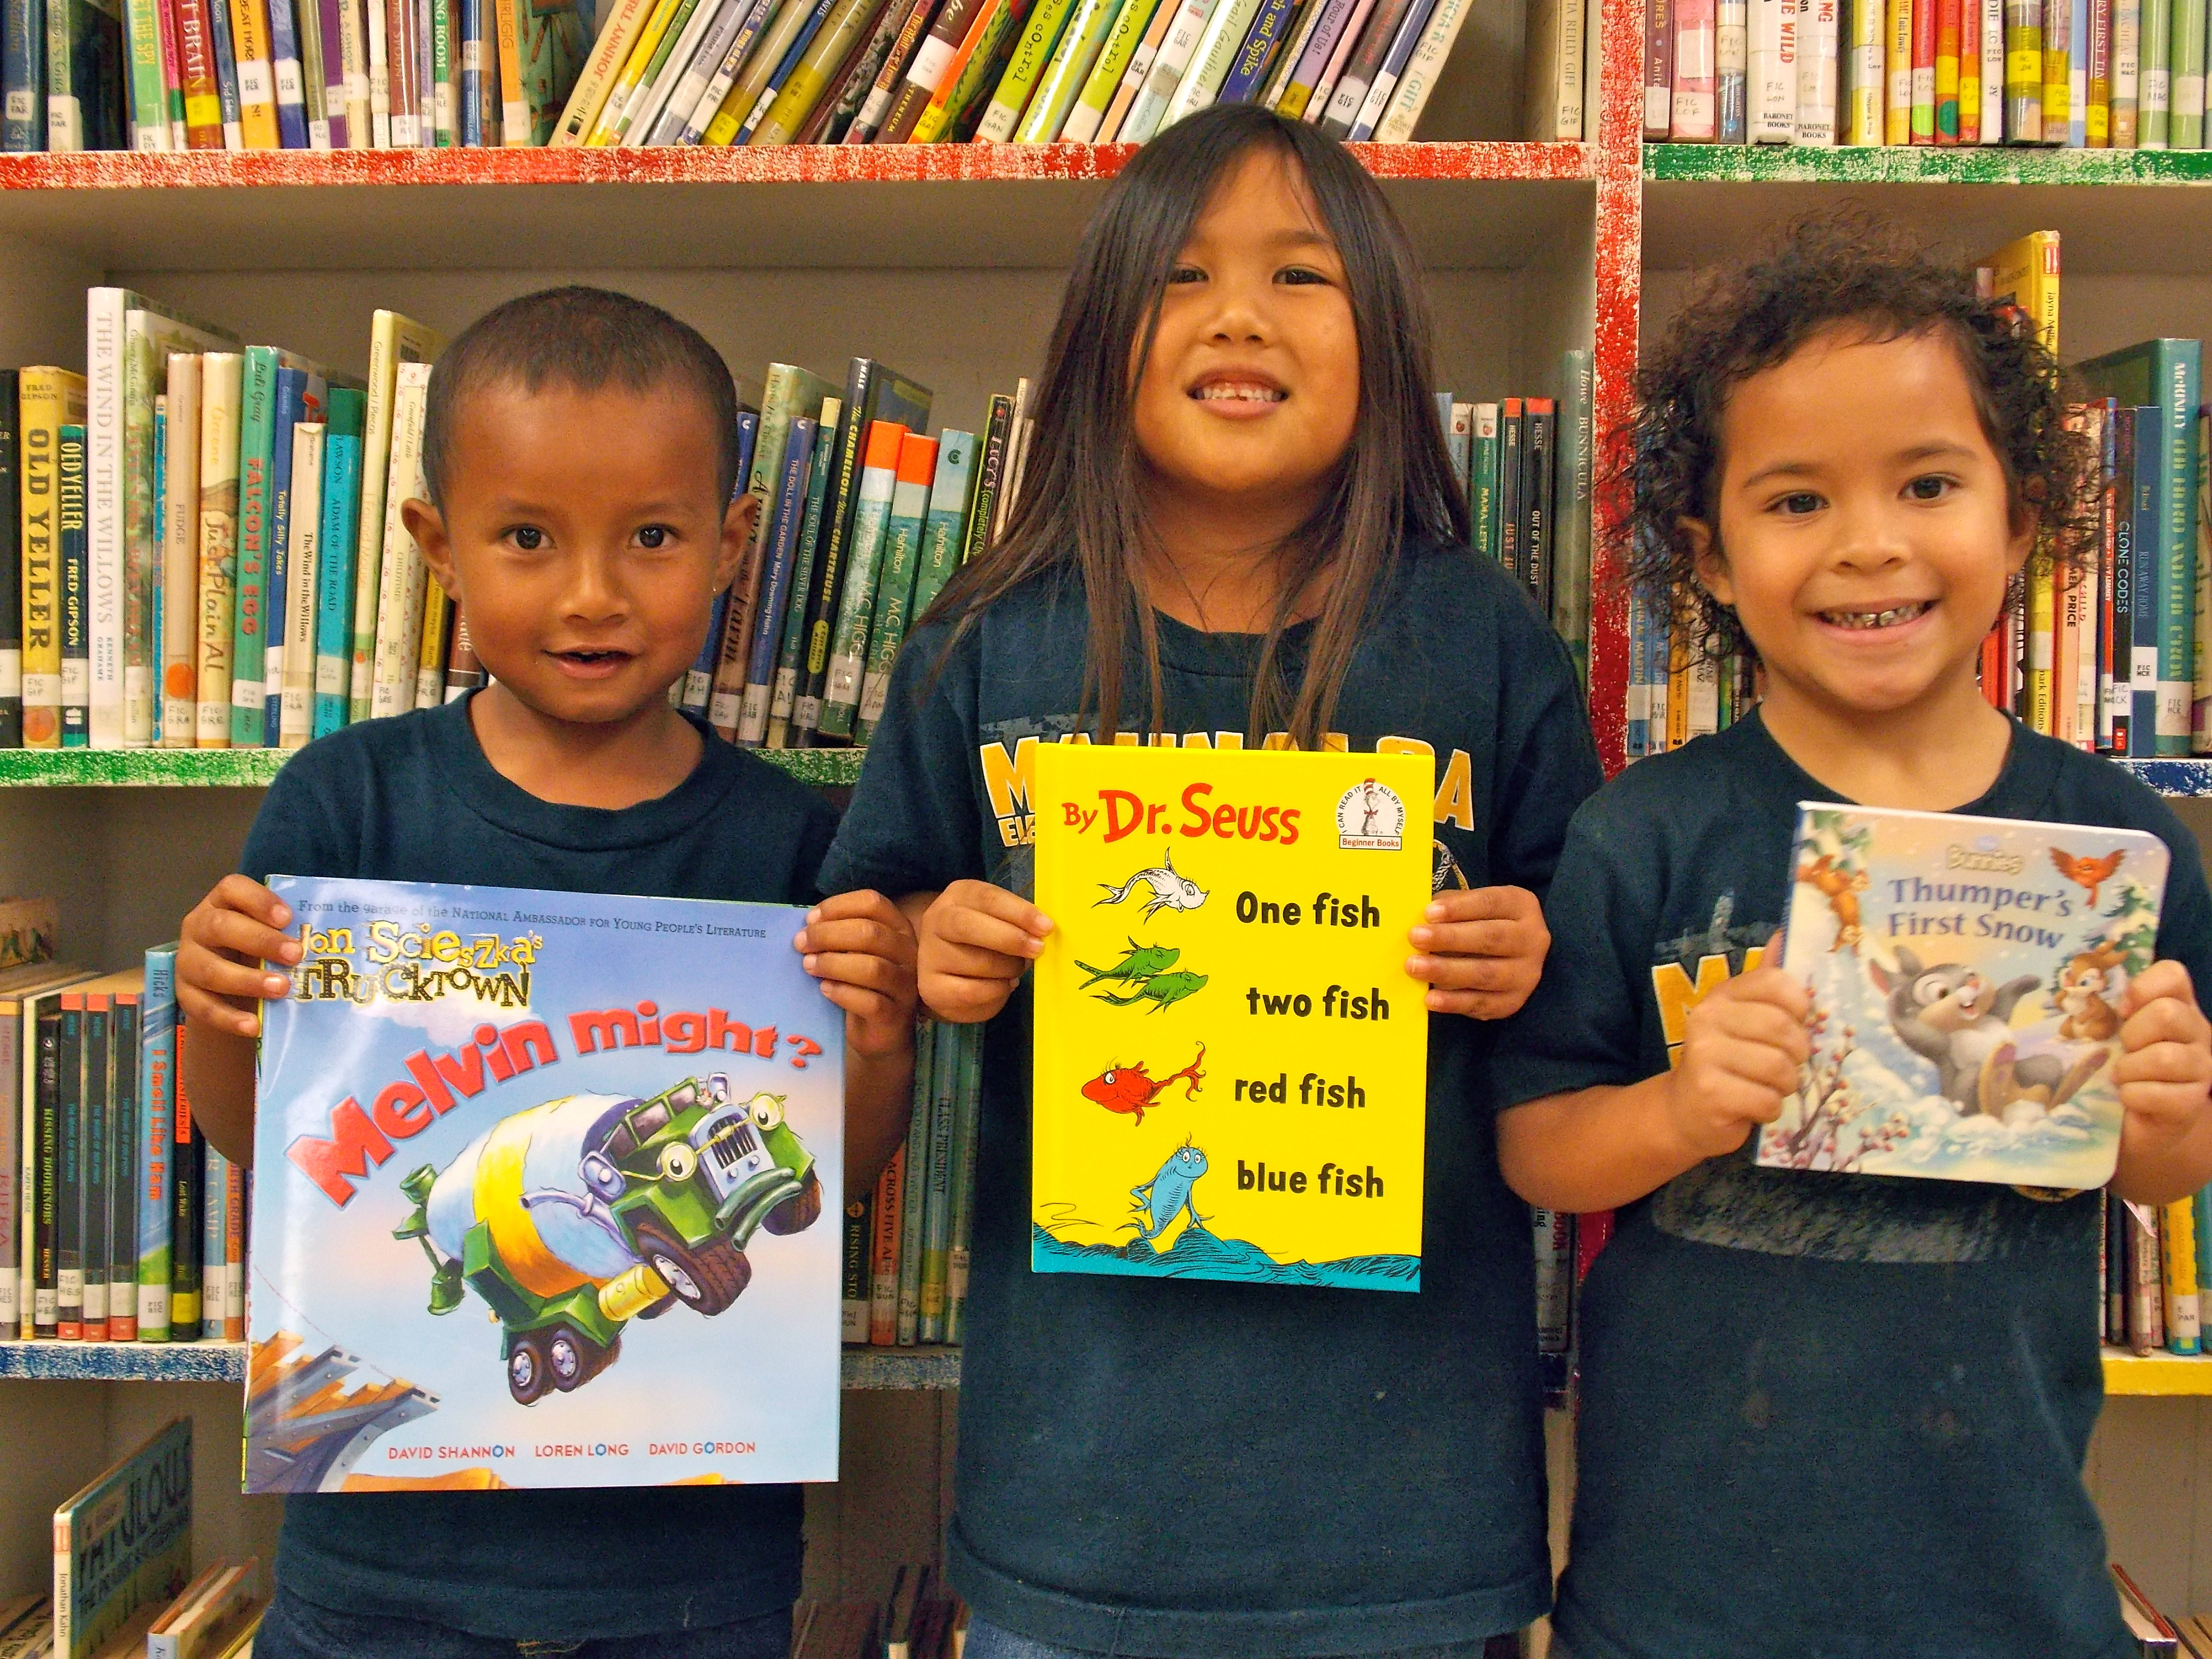 Keiki are excited to read their new books from the First Book program